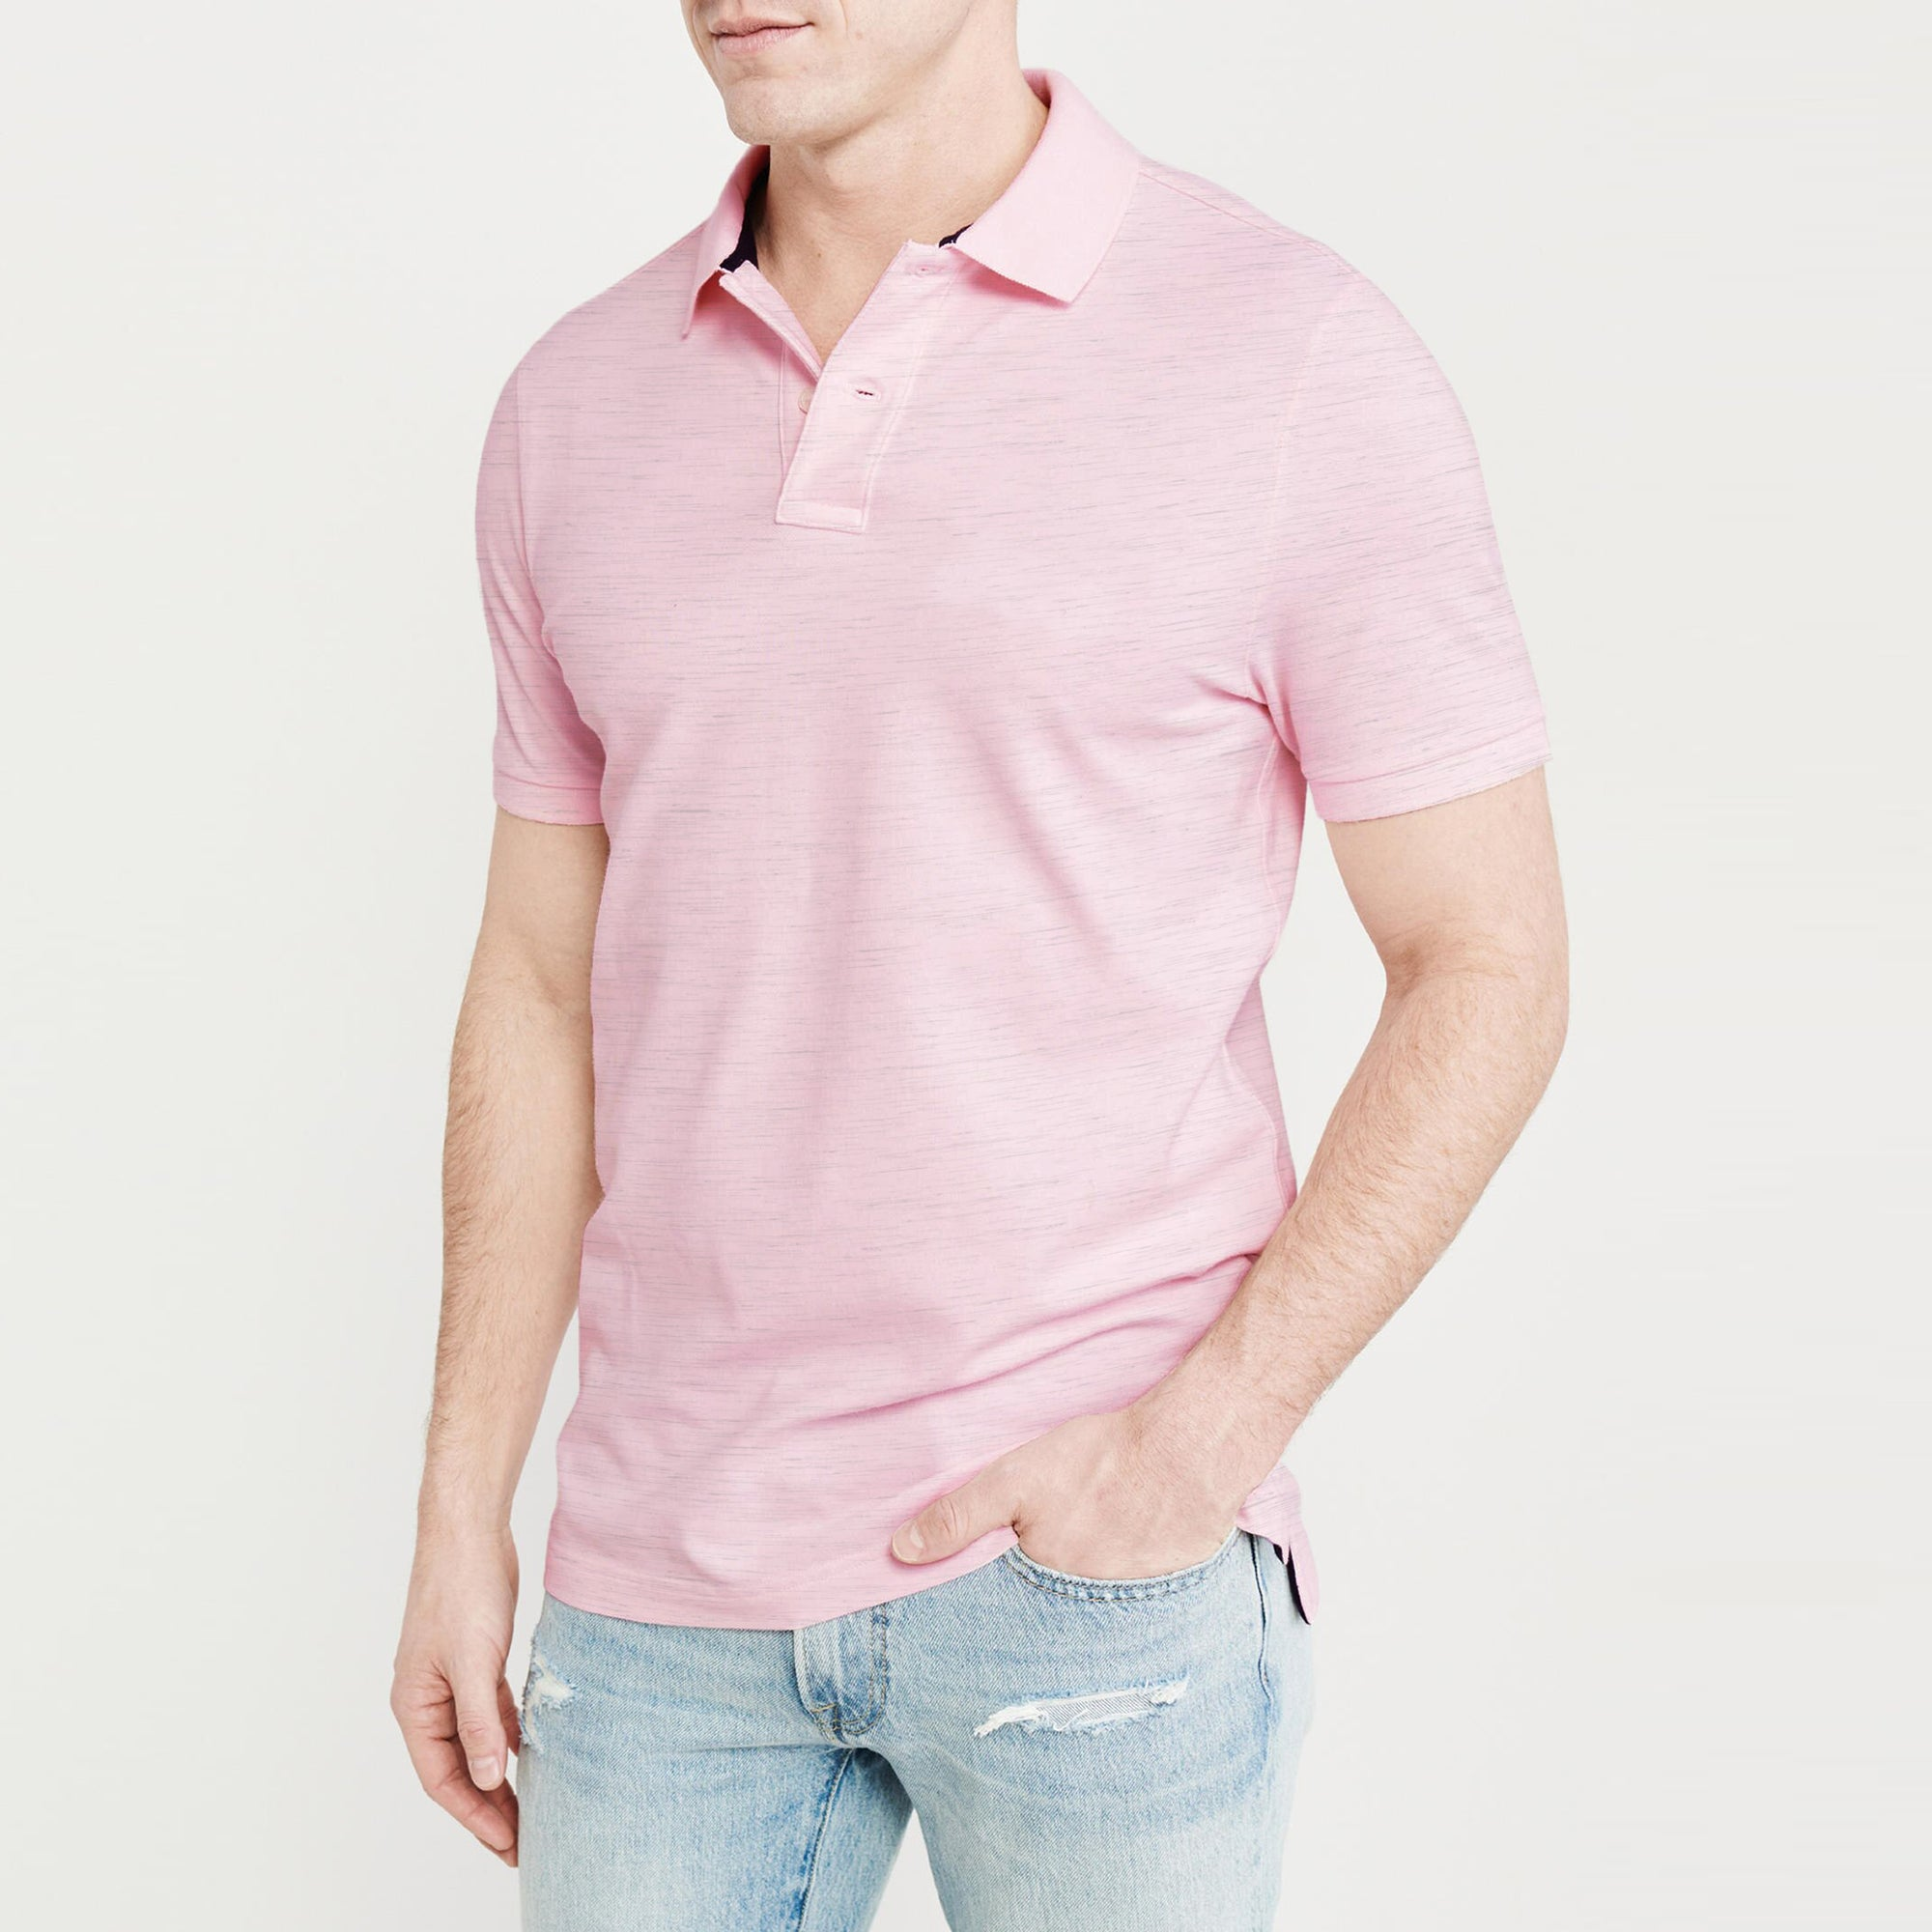 Basic Edition P.Q Short Sleeve Polo Shirt For Men-Pink with Melange-BE9126